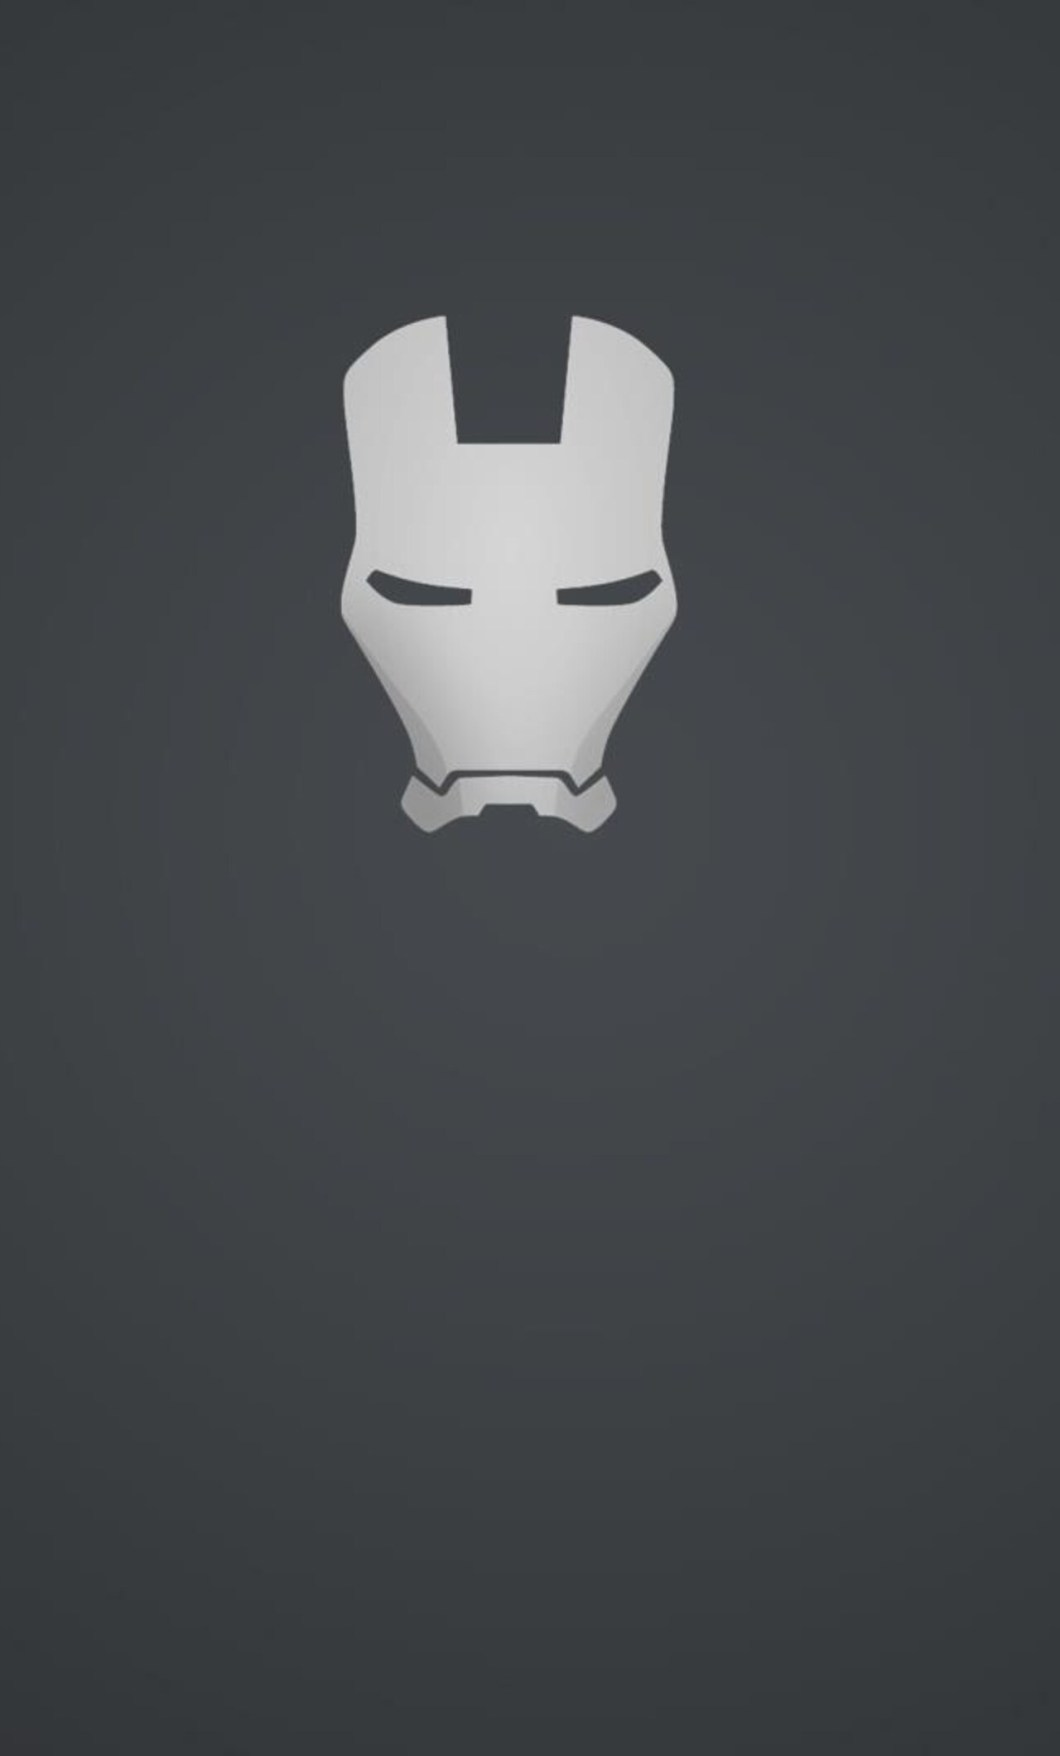 Iron Man Wallpaper Hd For Iphone 6 Bestpicture1 Org